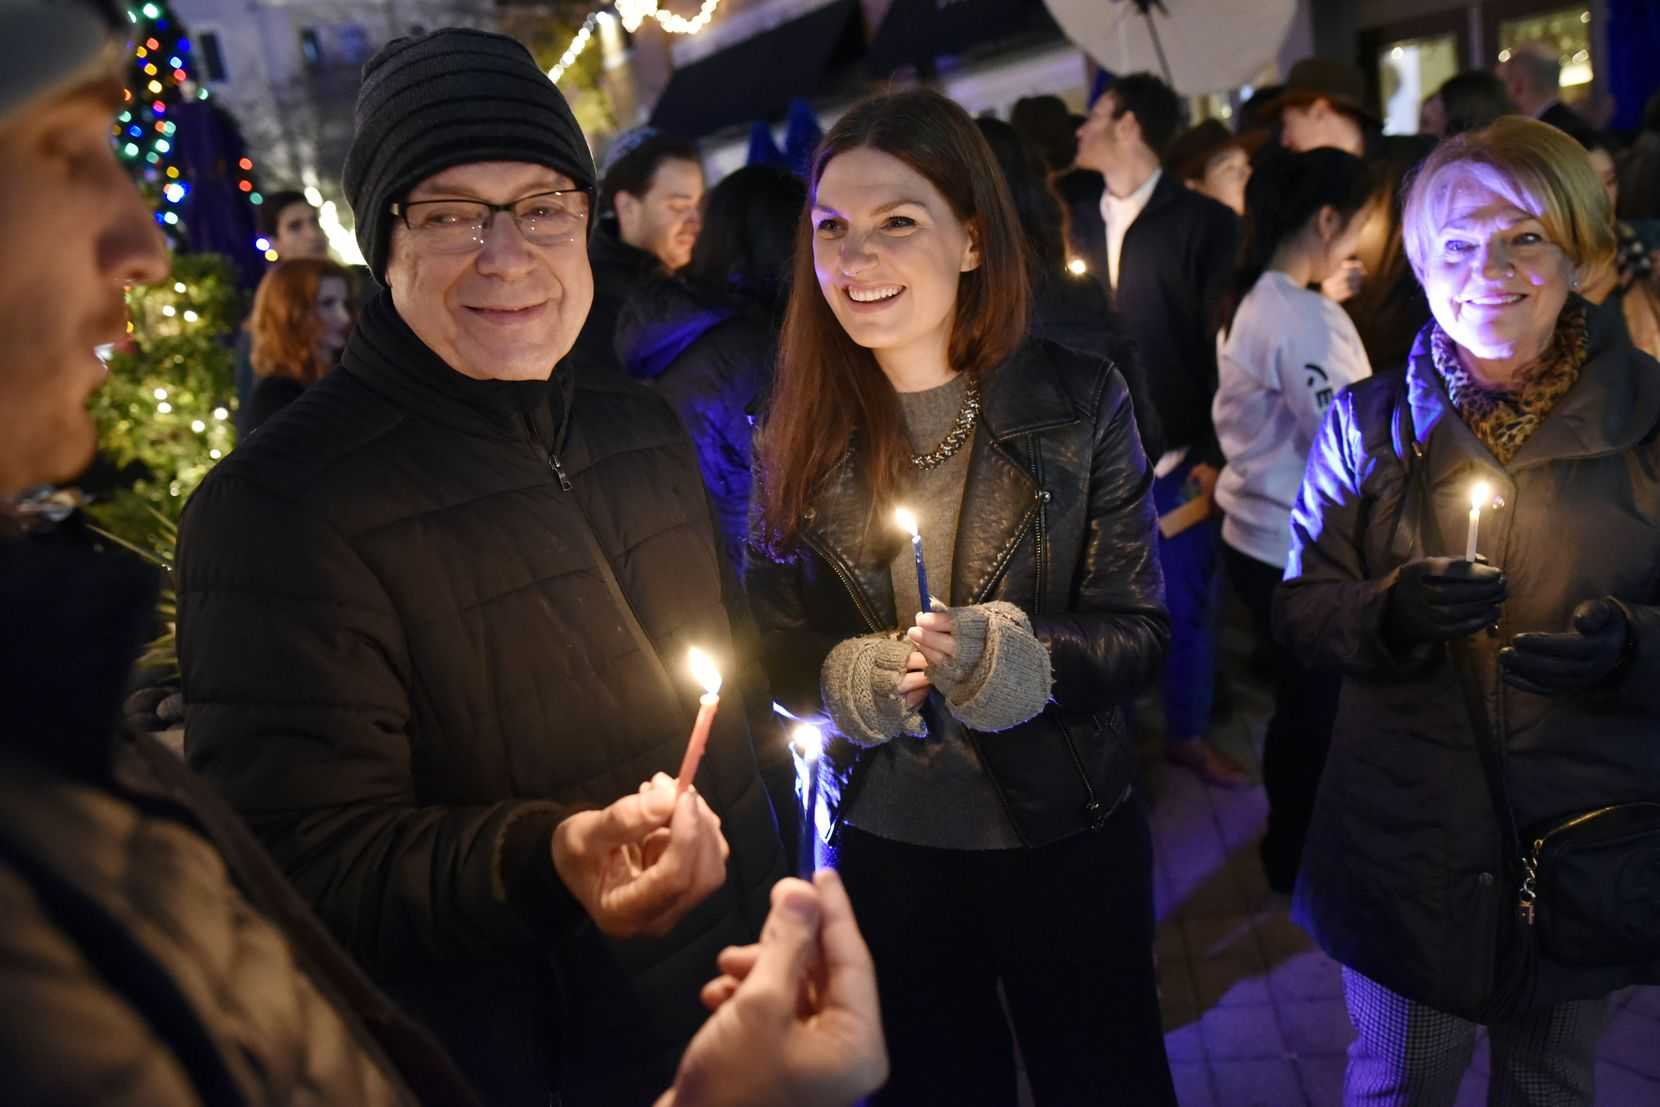 Henry and Georgia Grantham (center) held Hanukkah candles with family members Mark Jenkins (left) and Anna Grantham (right) during 2018's West Village menorah lighting hosted by the Intown Chabad. This year, Intown Chabad will host menorah lightings at Klyde Warren Park.